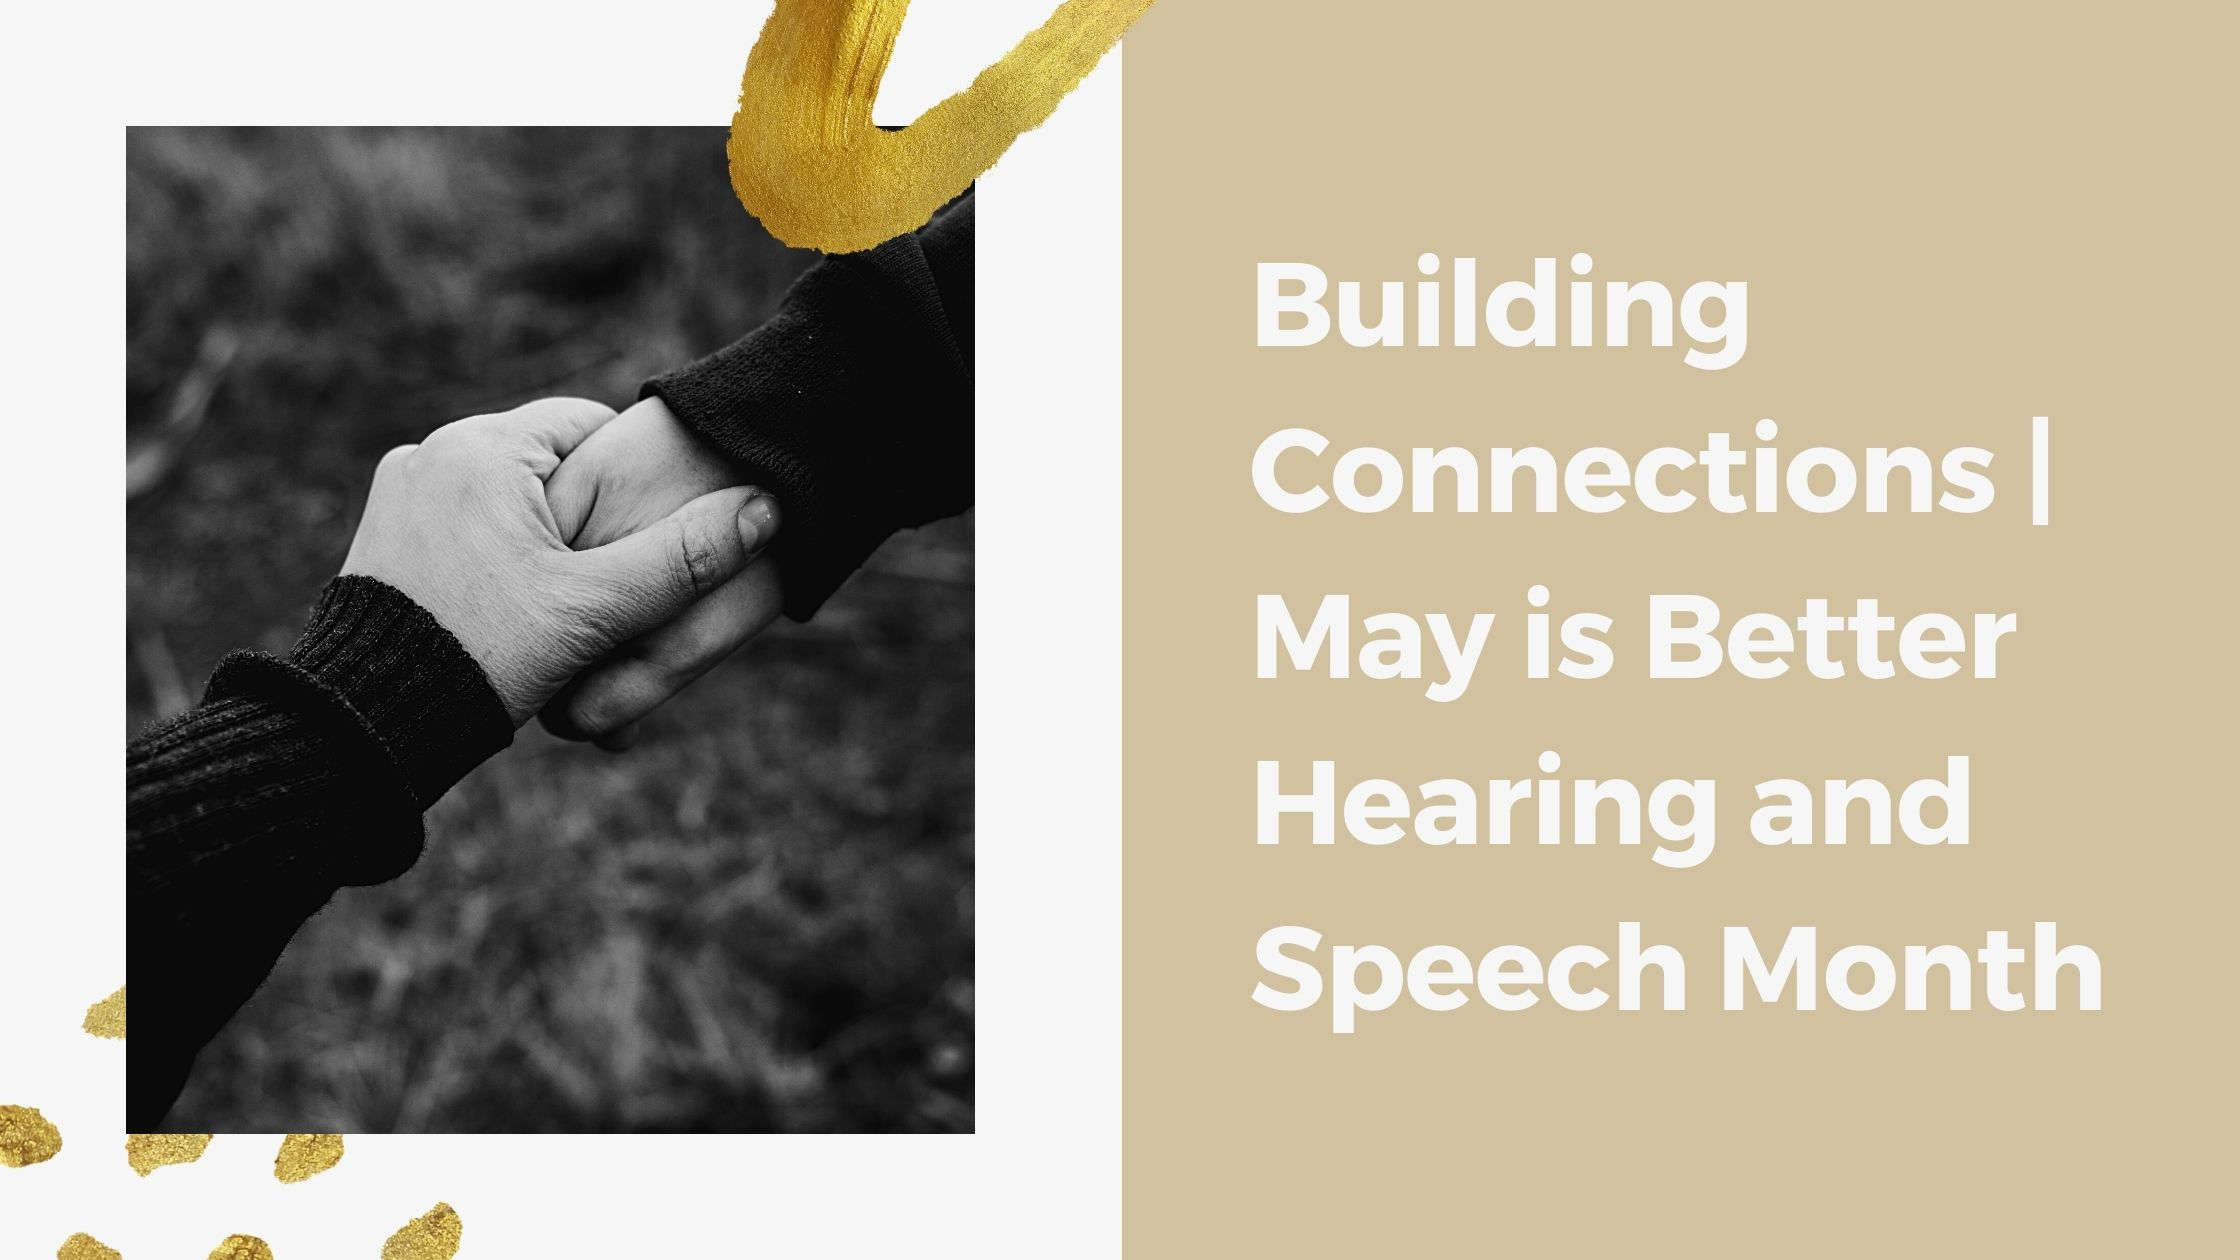 Building Connections | May is Better Hearing and Speech MonthBuilding Connections | May is Better Hearing and Speech Month